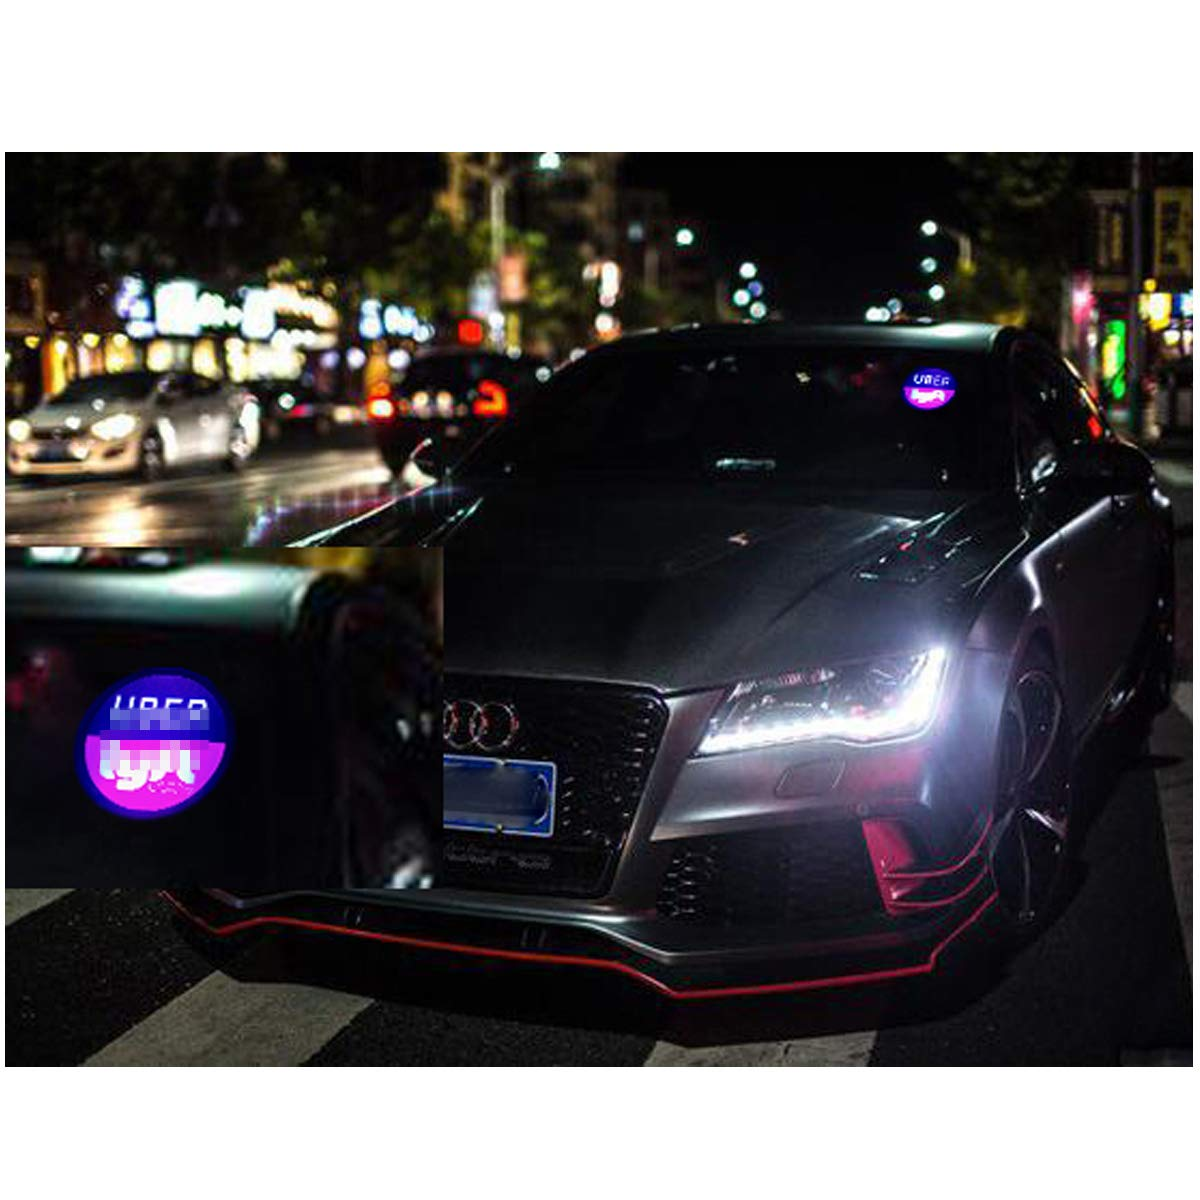 Rideshare Sign Wireless Decal Accessories Removable Rideshare Glowing for Car LED Light Logo Sticker Decal Glow Rideshare Light Up Sign Dry Battery Powered